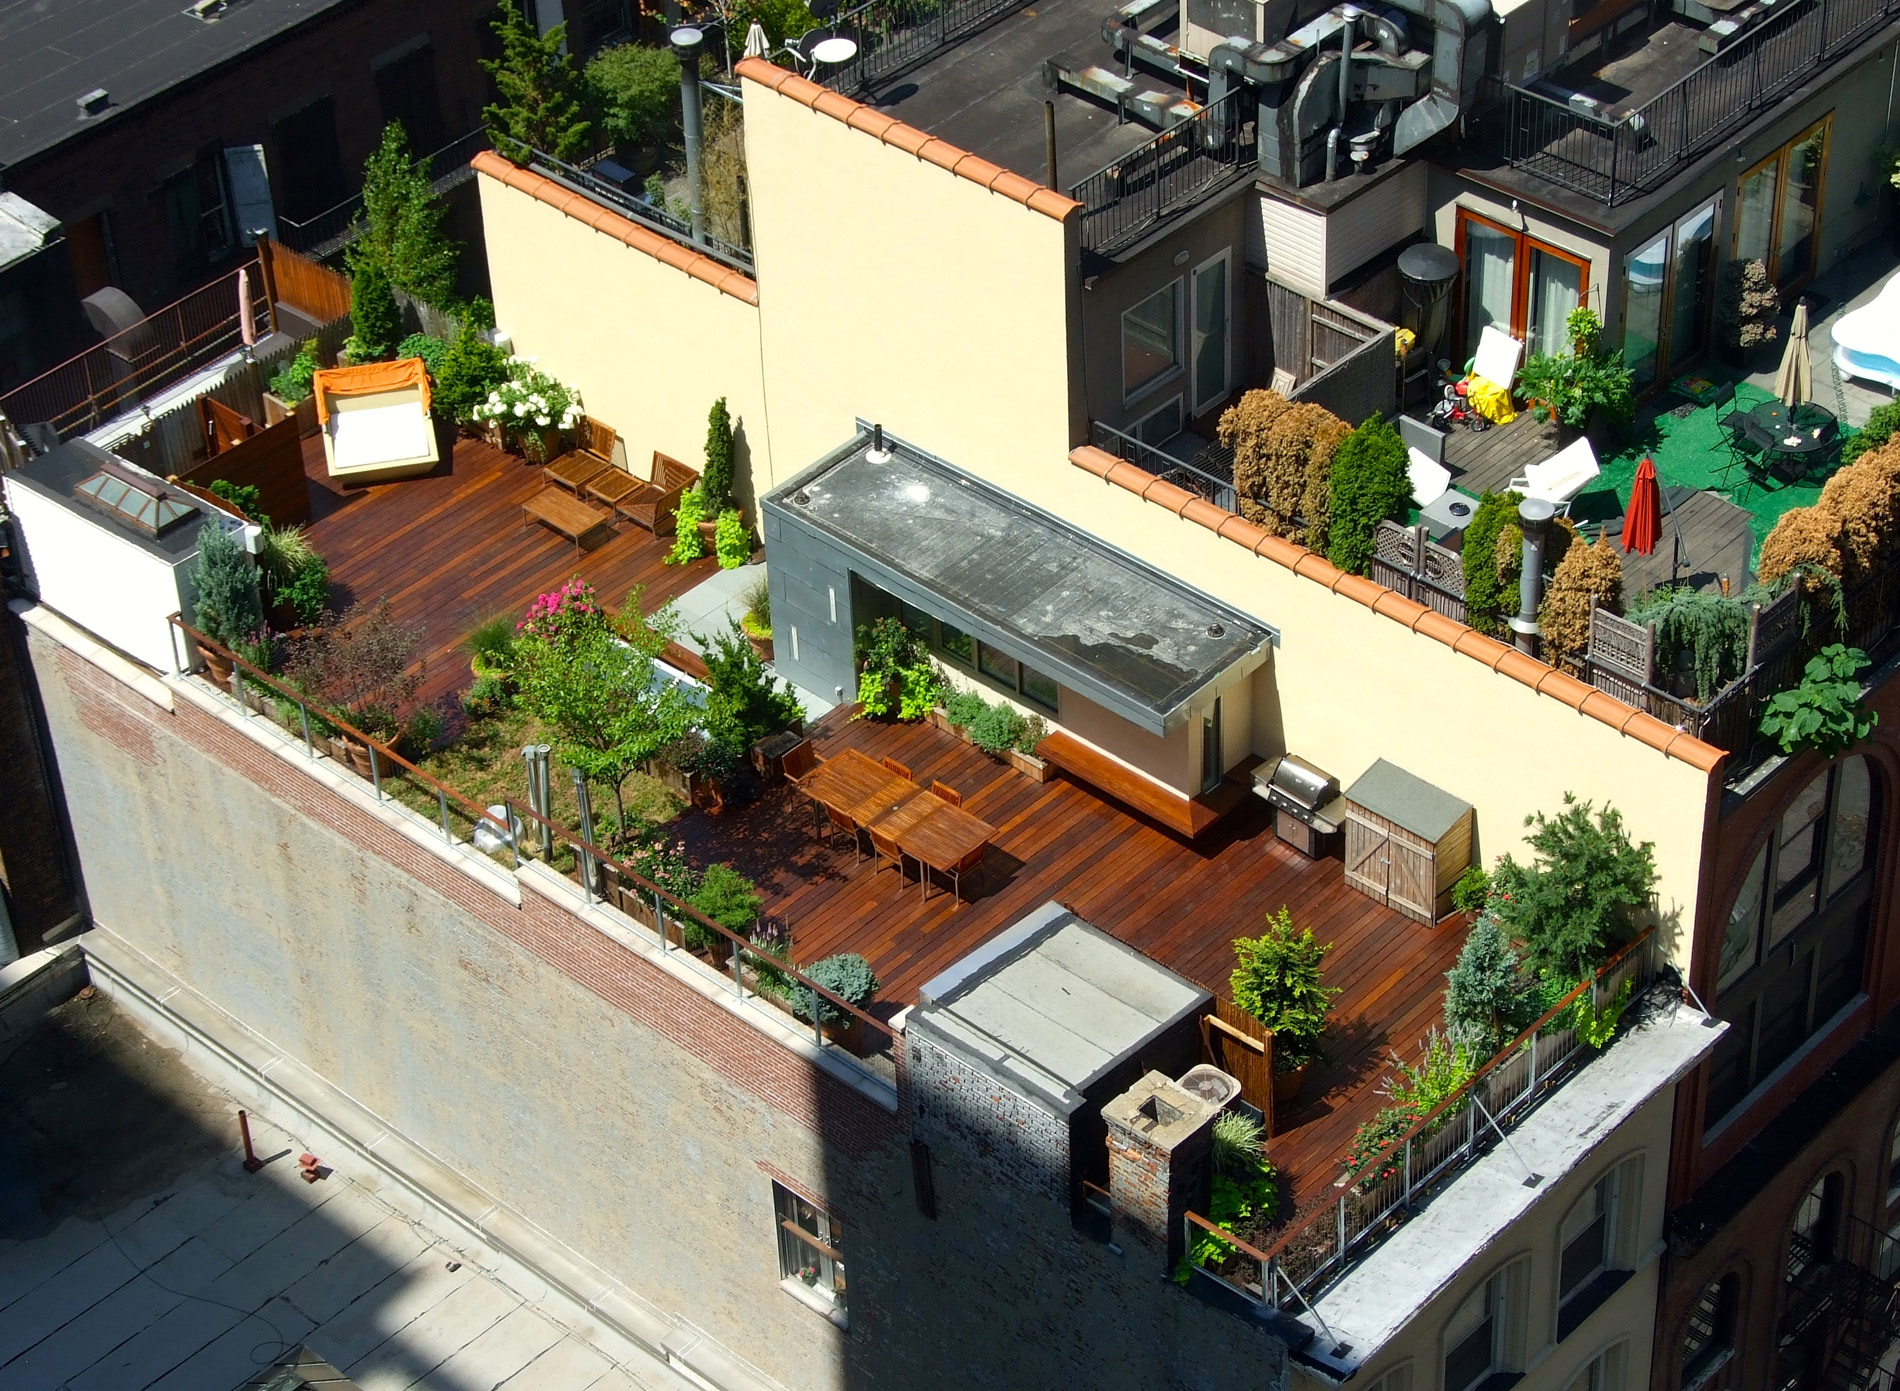 Rooftop Terrace Decks All Decked Out with regard to proportions 1900 X 1391